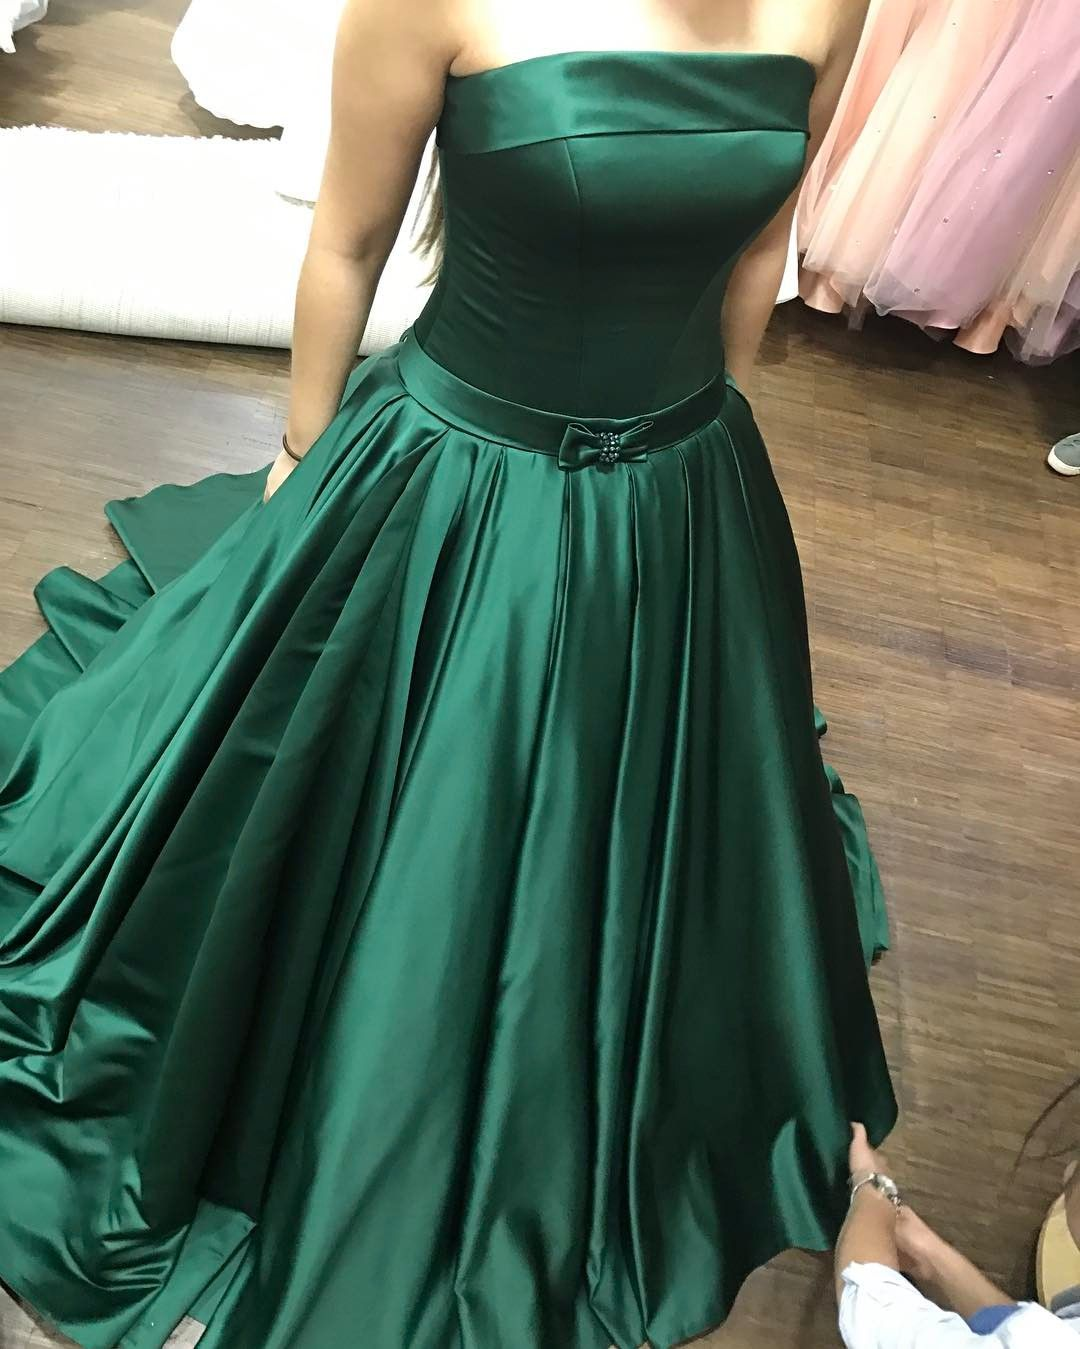 Strapless Prom Dresses Pleated Green Satin Party Ball Gowns With Front Bow In 2021 Green Prom Dress Long Green Prom Dress Long Prom Dresses Strapless [ 1349 x 1080 Pixel ]